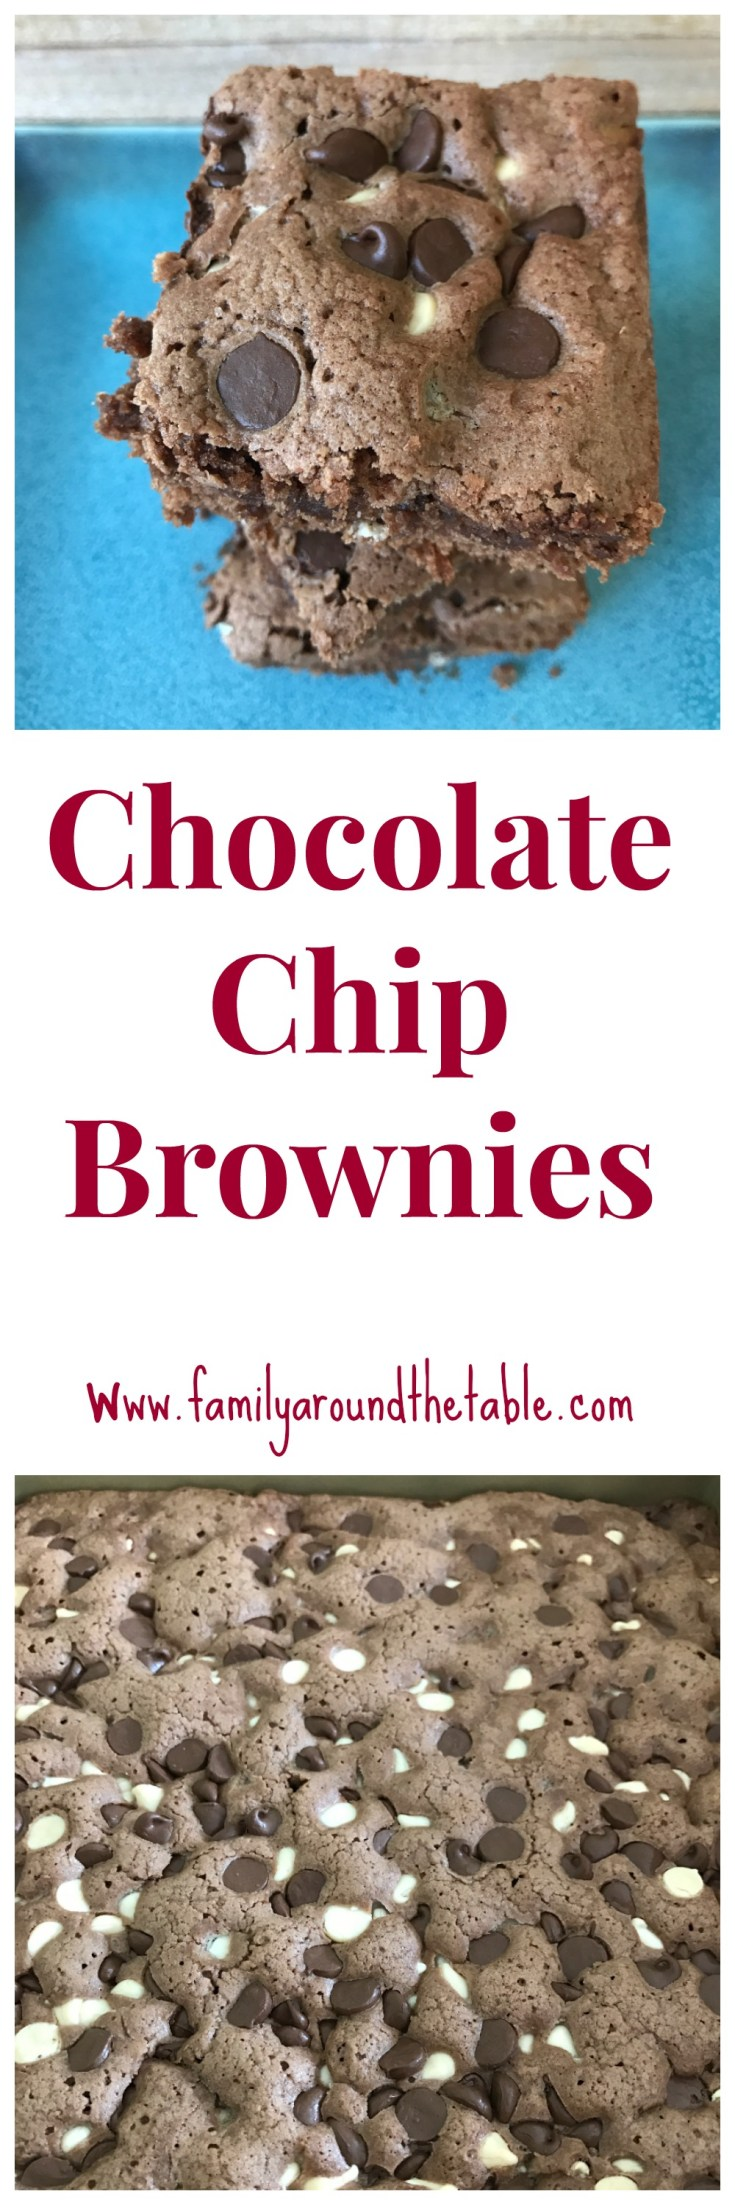 Chocolate Chip Brownies  are perfect for potlucks or to welcome your kids home from school.